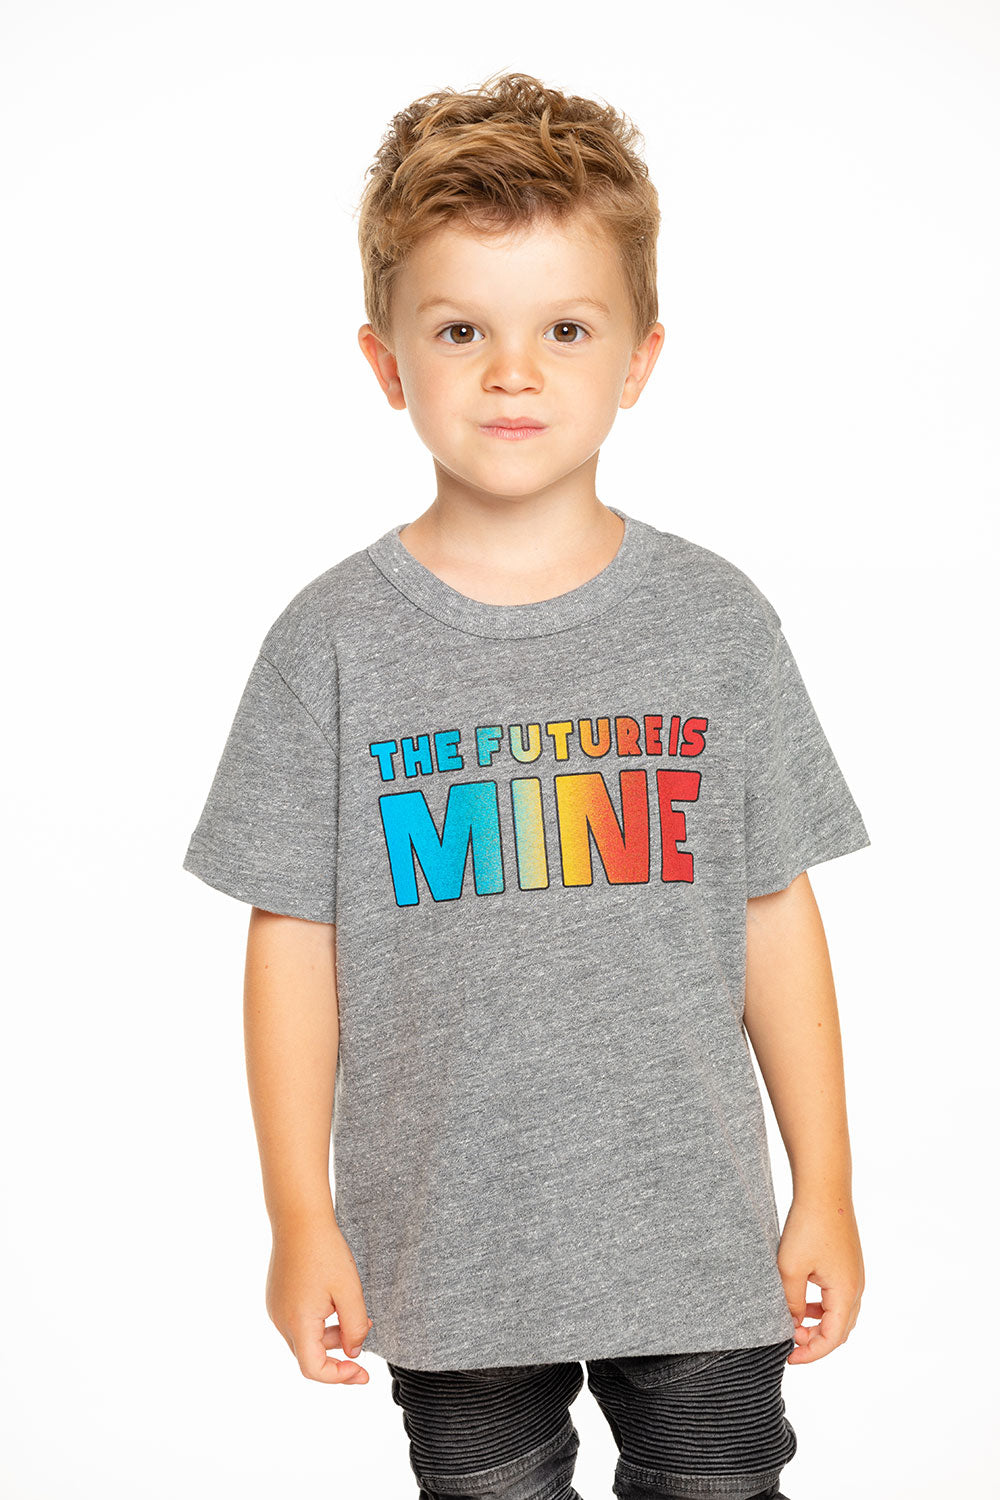 Bright Future Tee BOYS chaserbrand4.myshopify.com